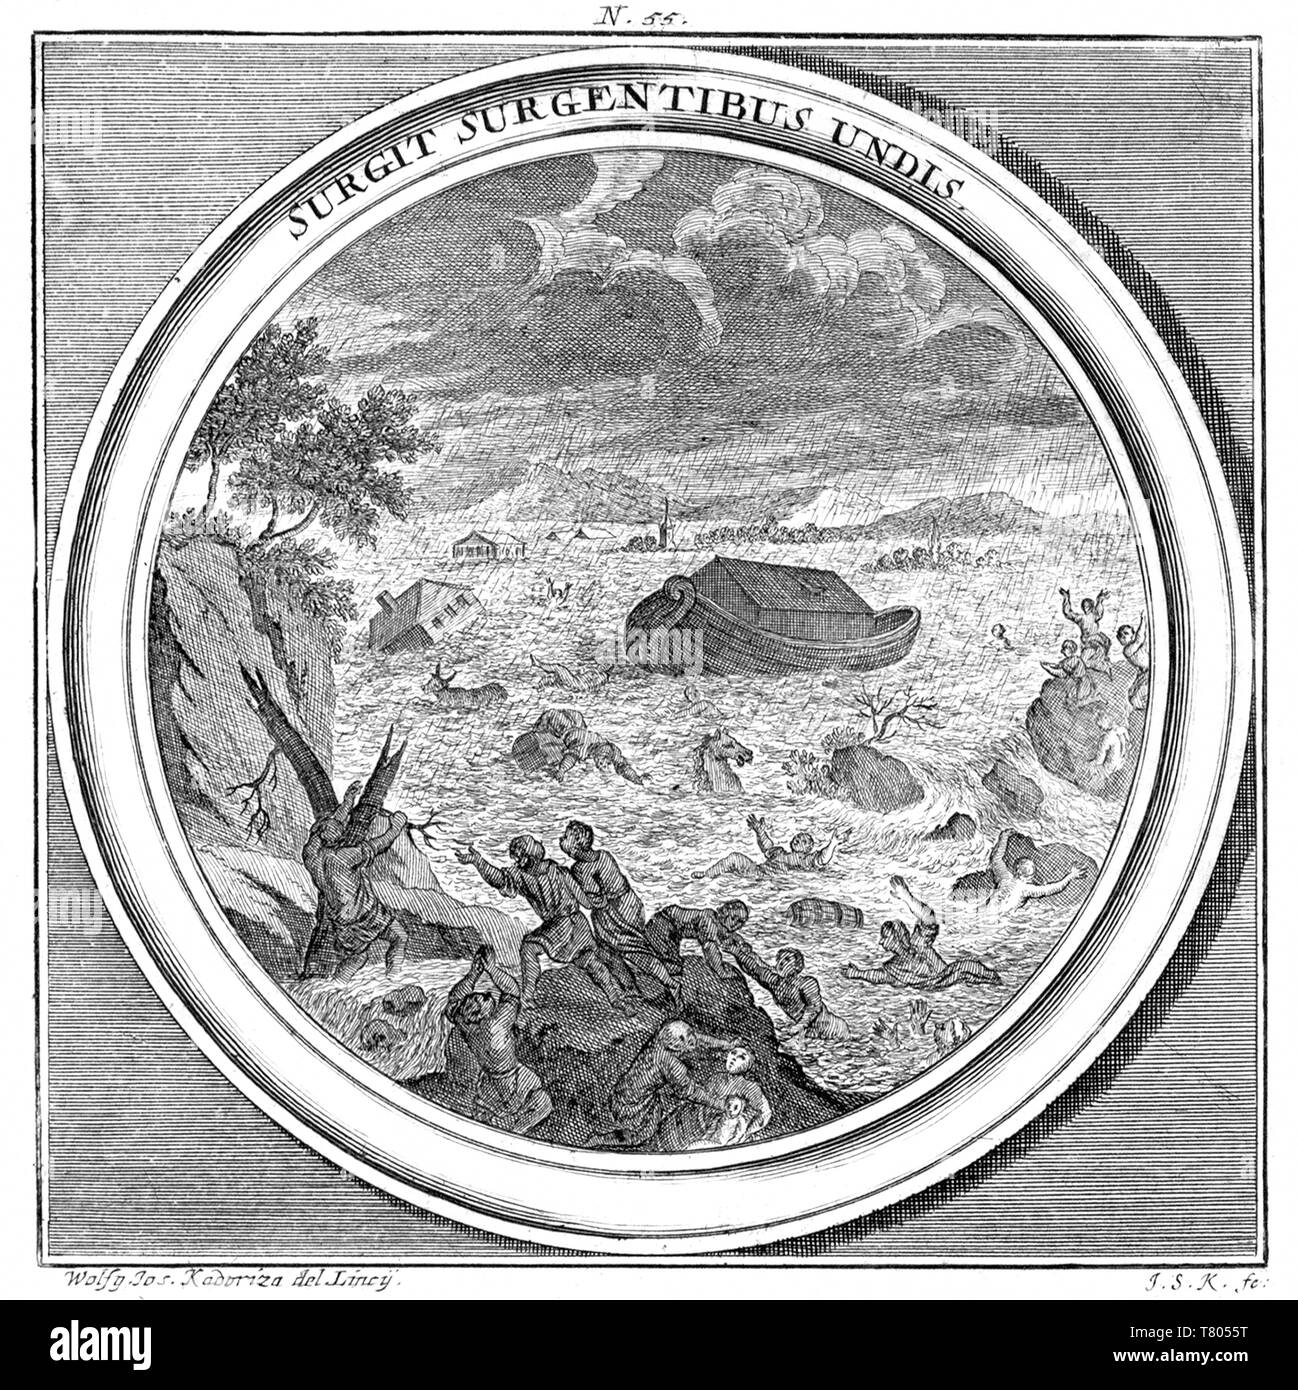 Noah's Ark, The Great Flood, 1709 Stock Photo